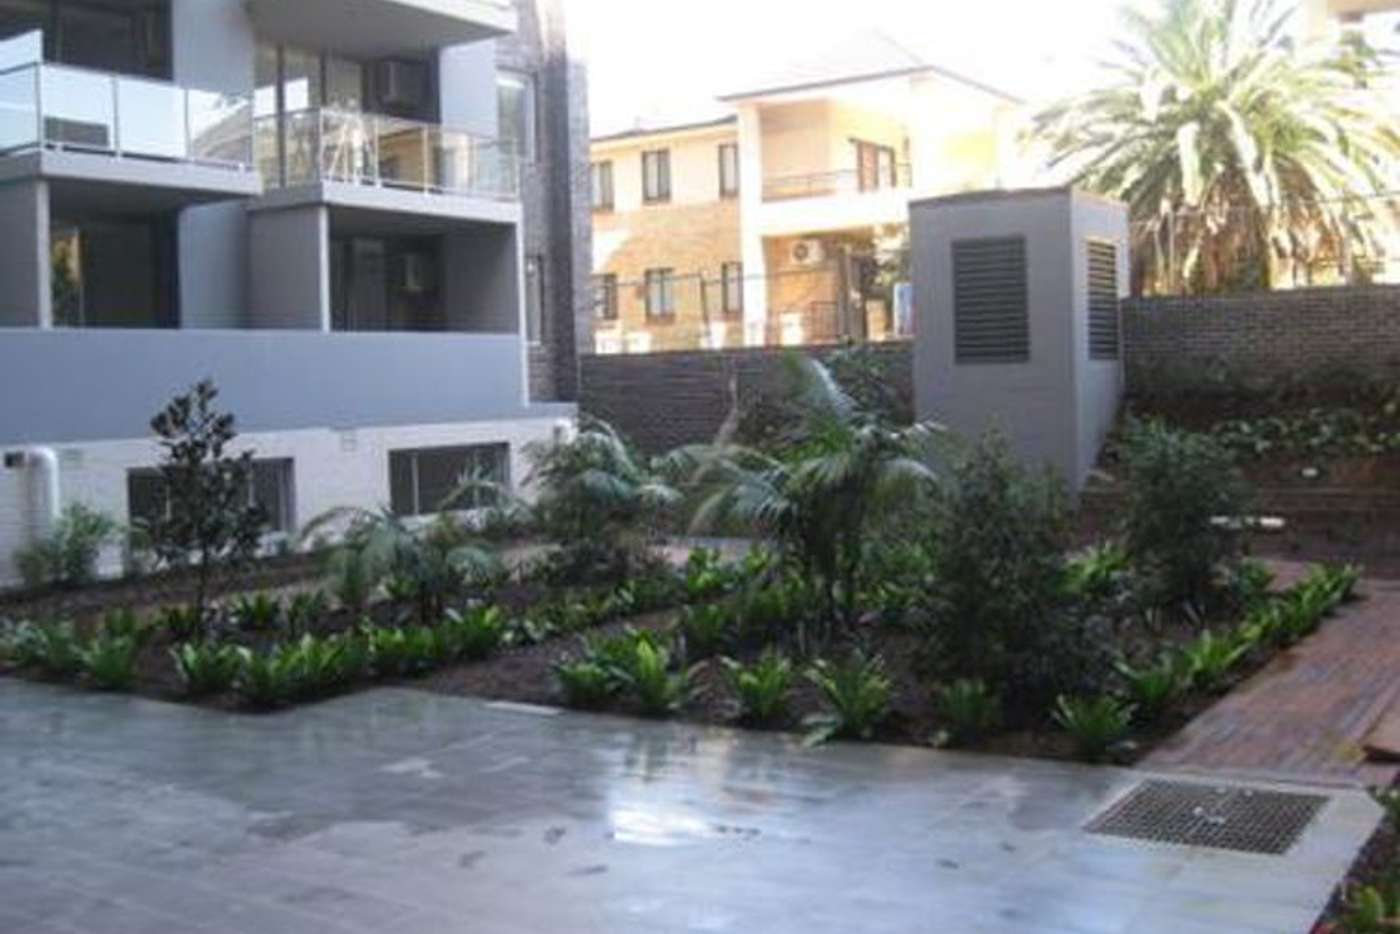 Main view of Homely unit listing, 52/108 James Ruse Drive, Rosehill NSW 2142